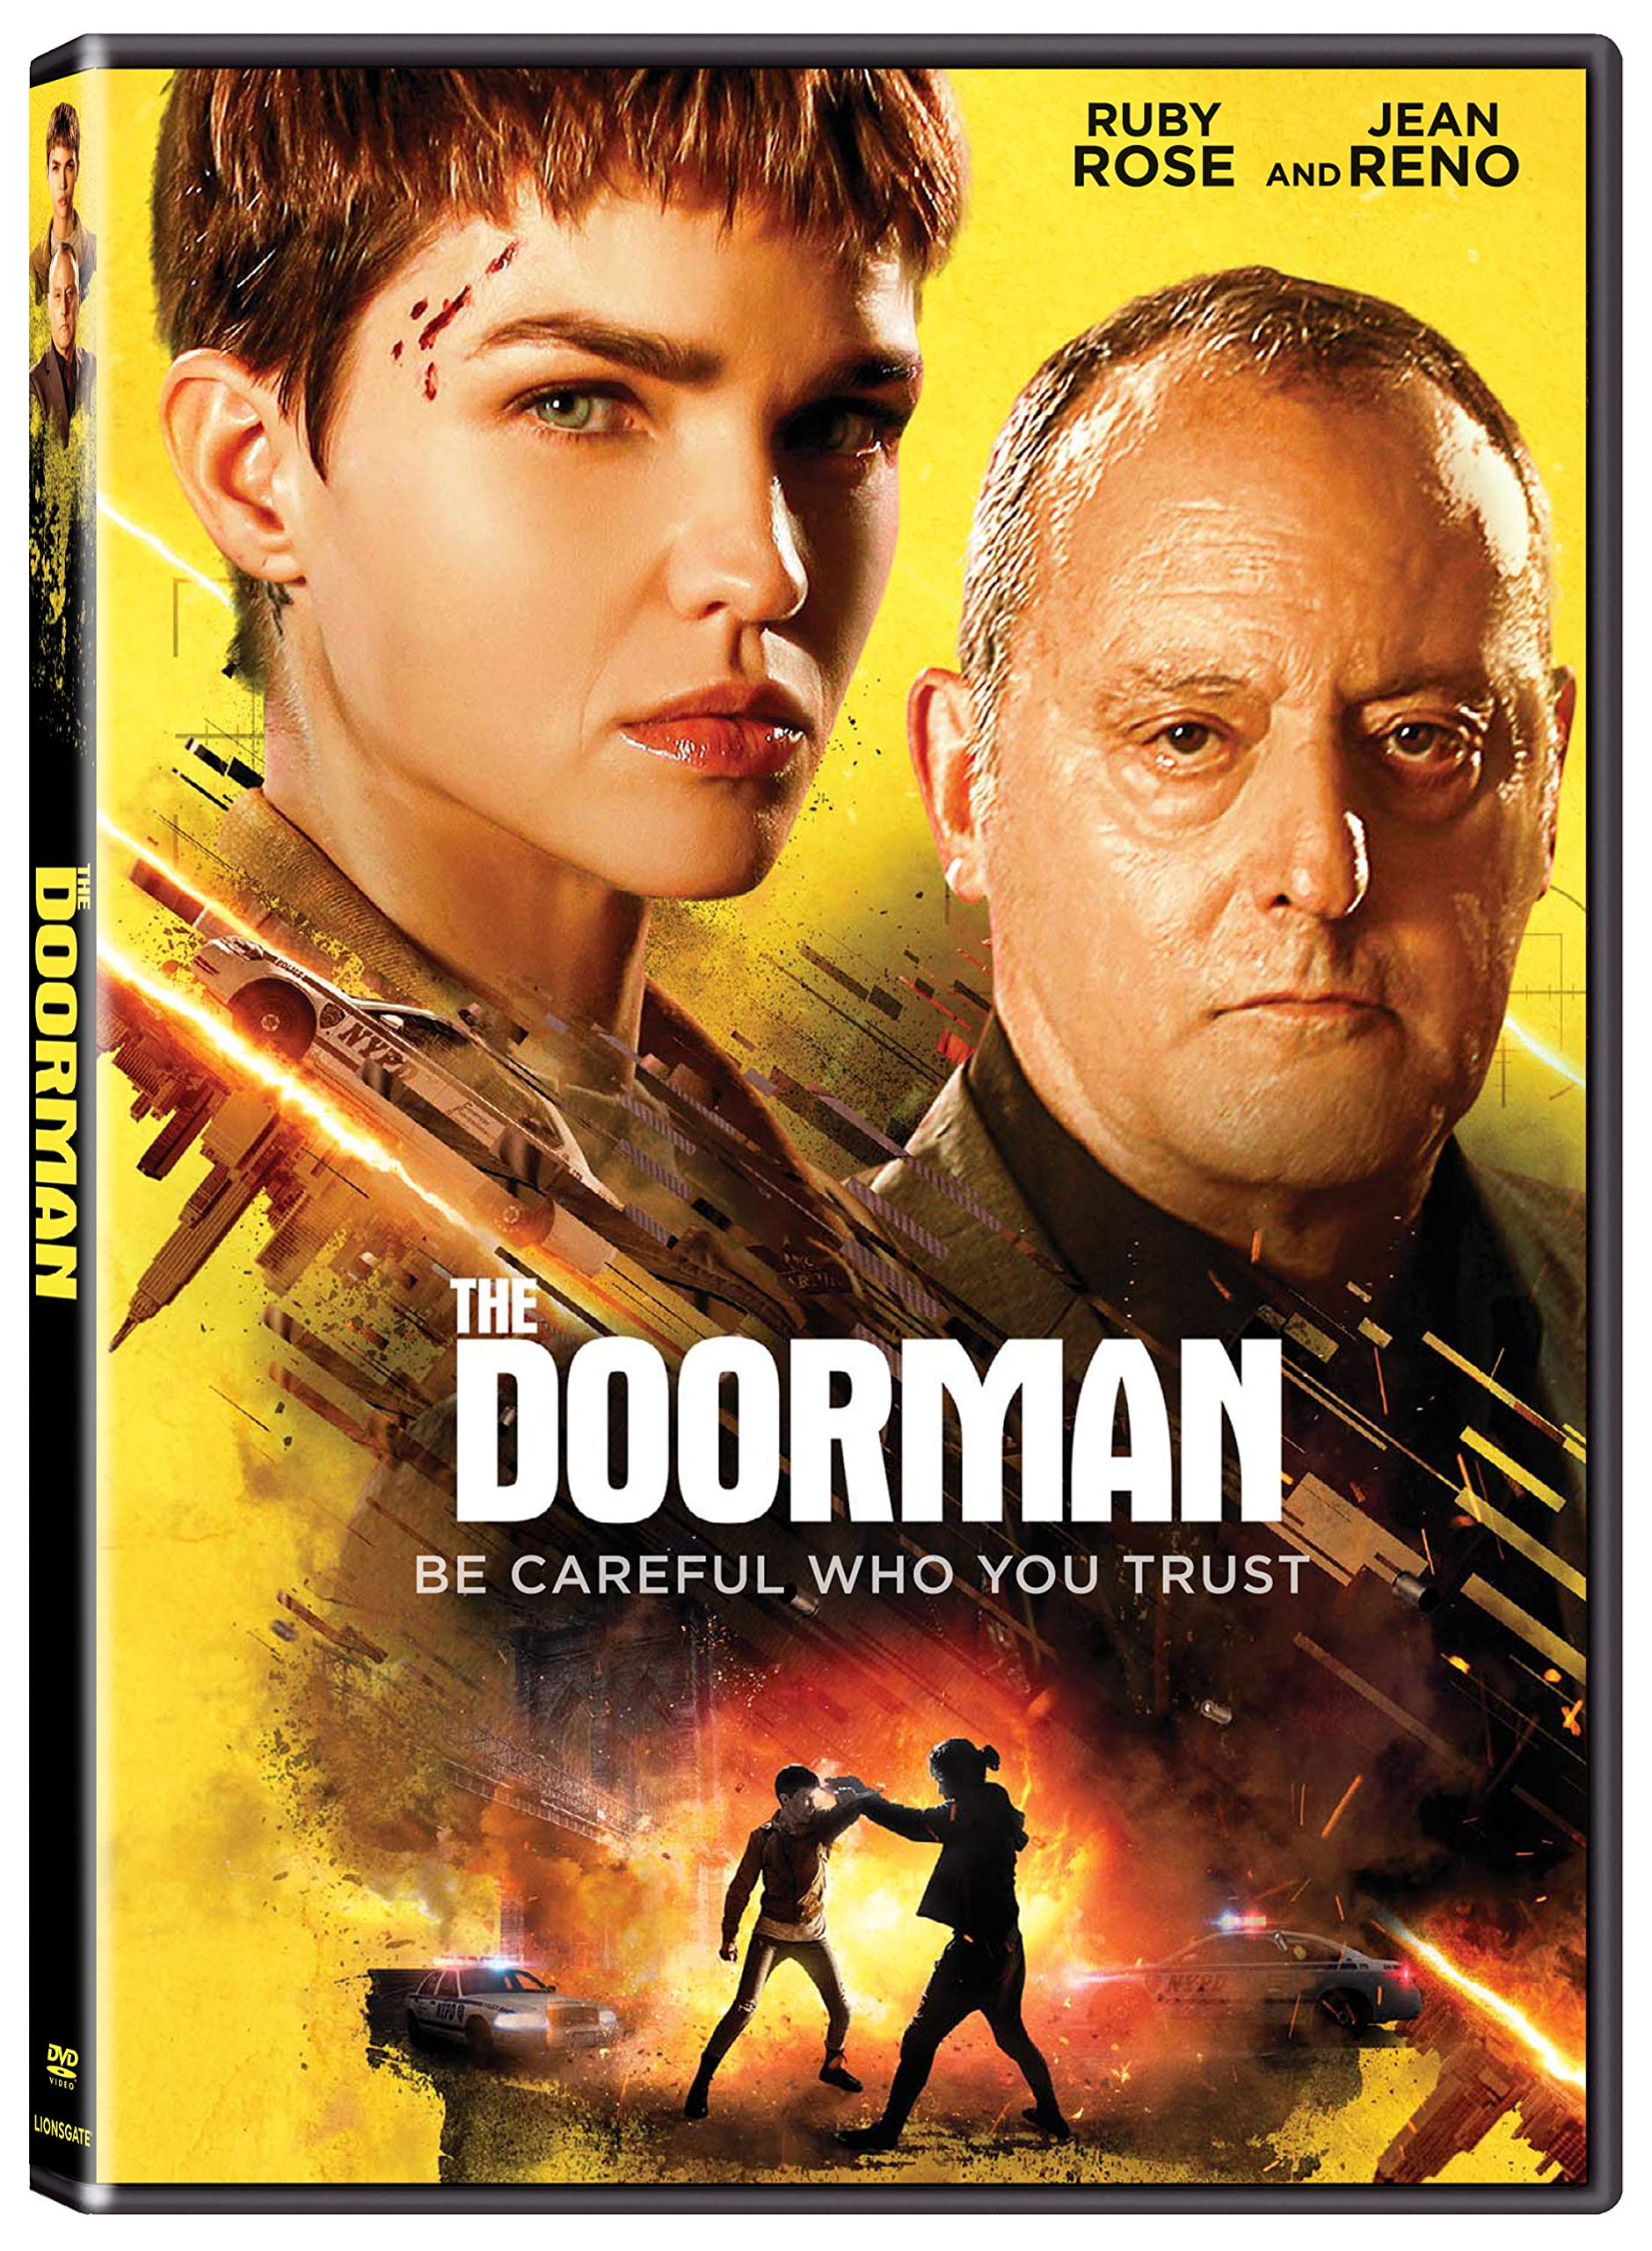 Book Cover: DOORMAN